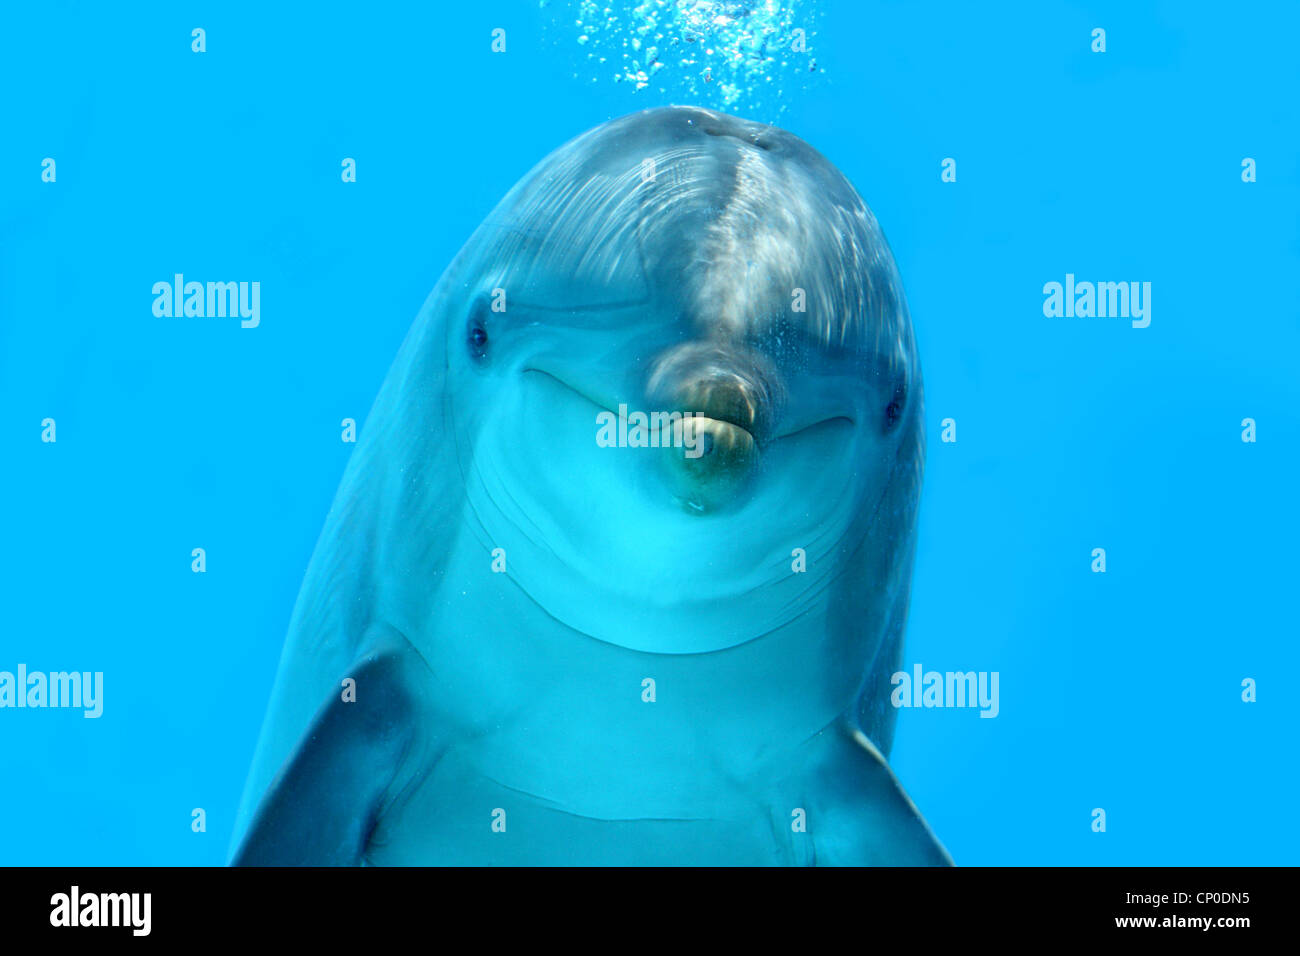 Dolphin Look - Stock Image